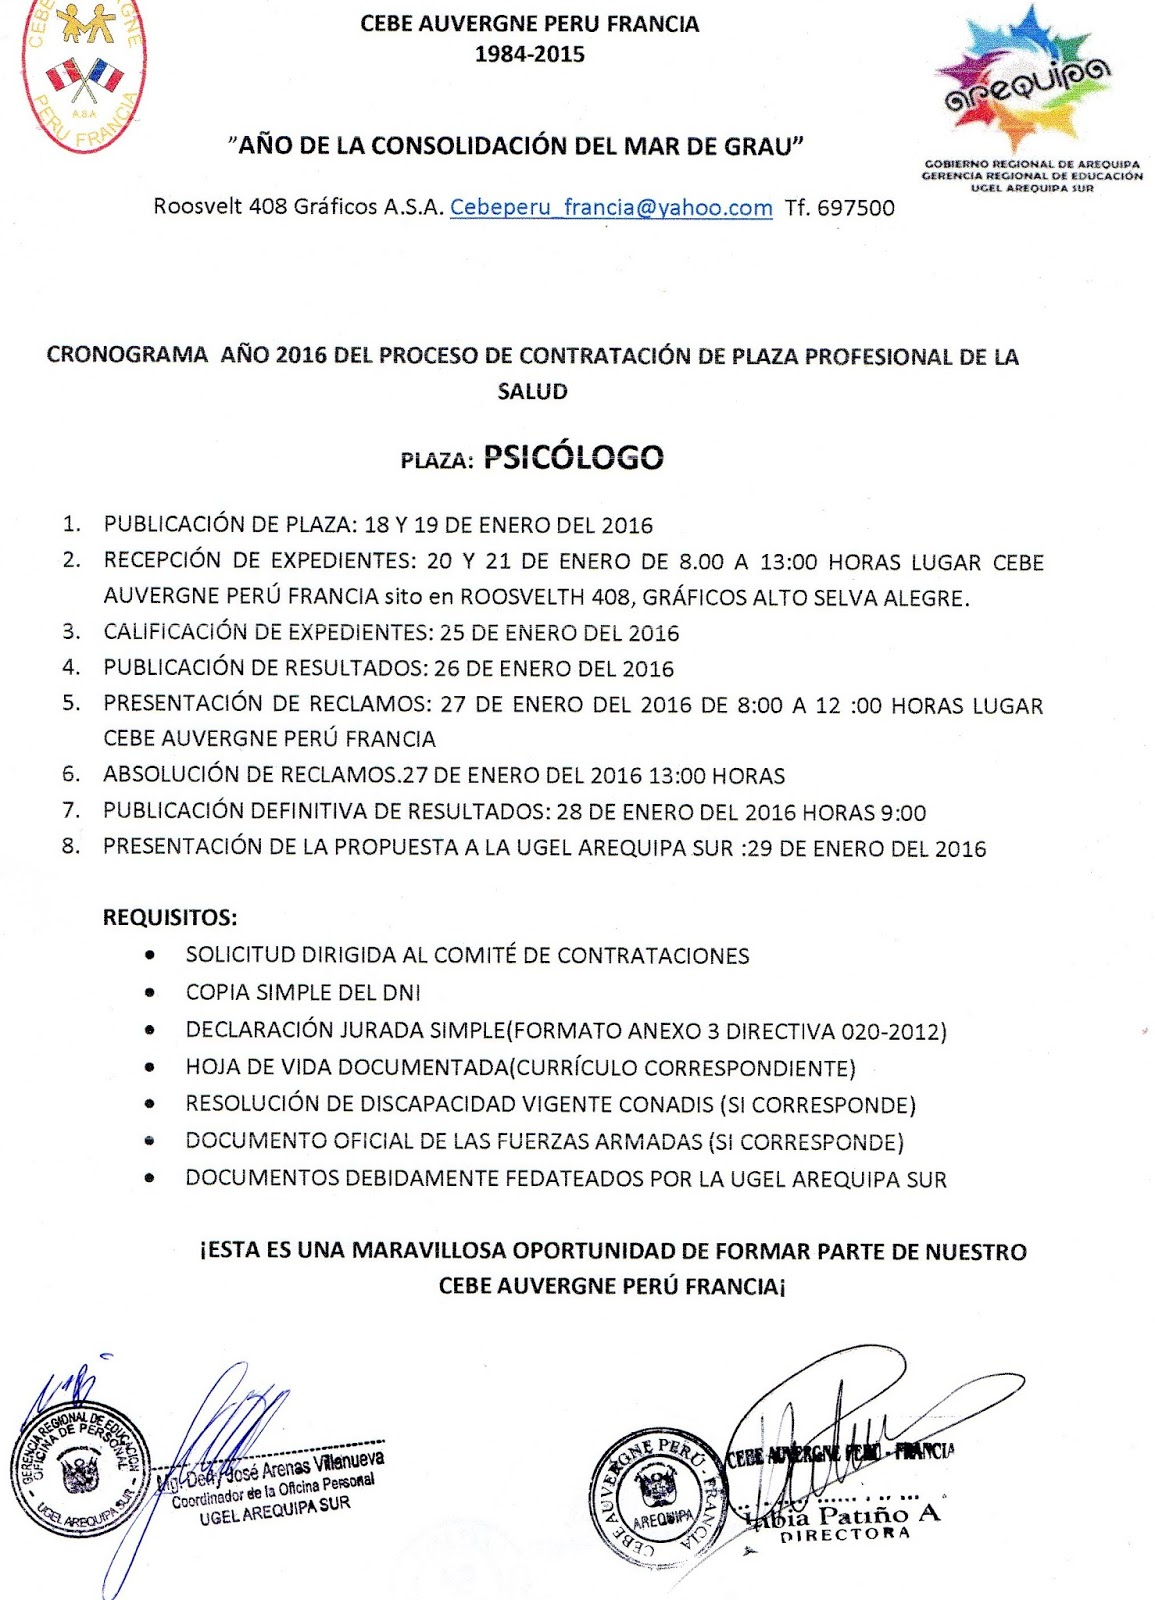 Contrato 2016 plaza de psic logo noticias m s for Convocatoria plazas docentes 2016